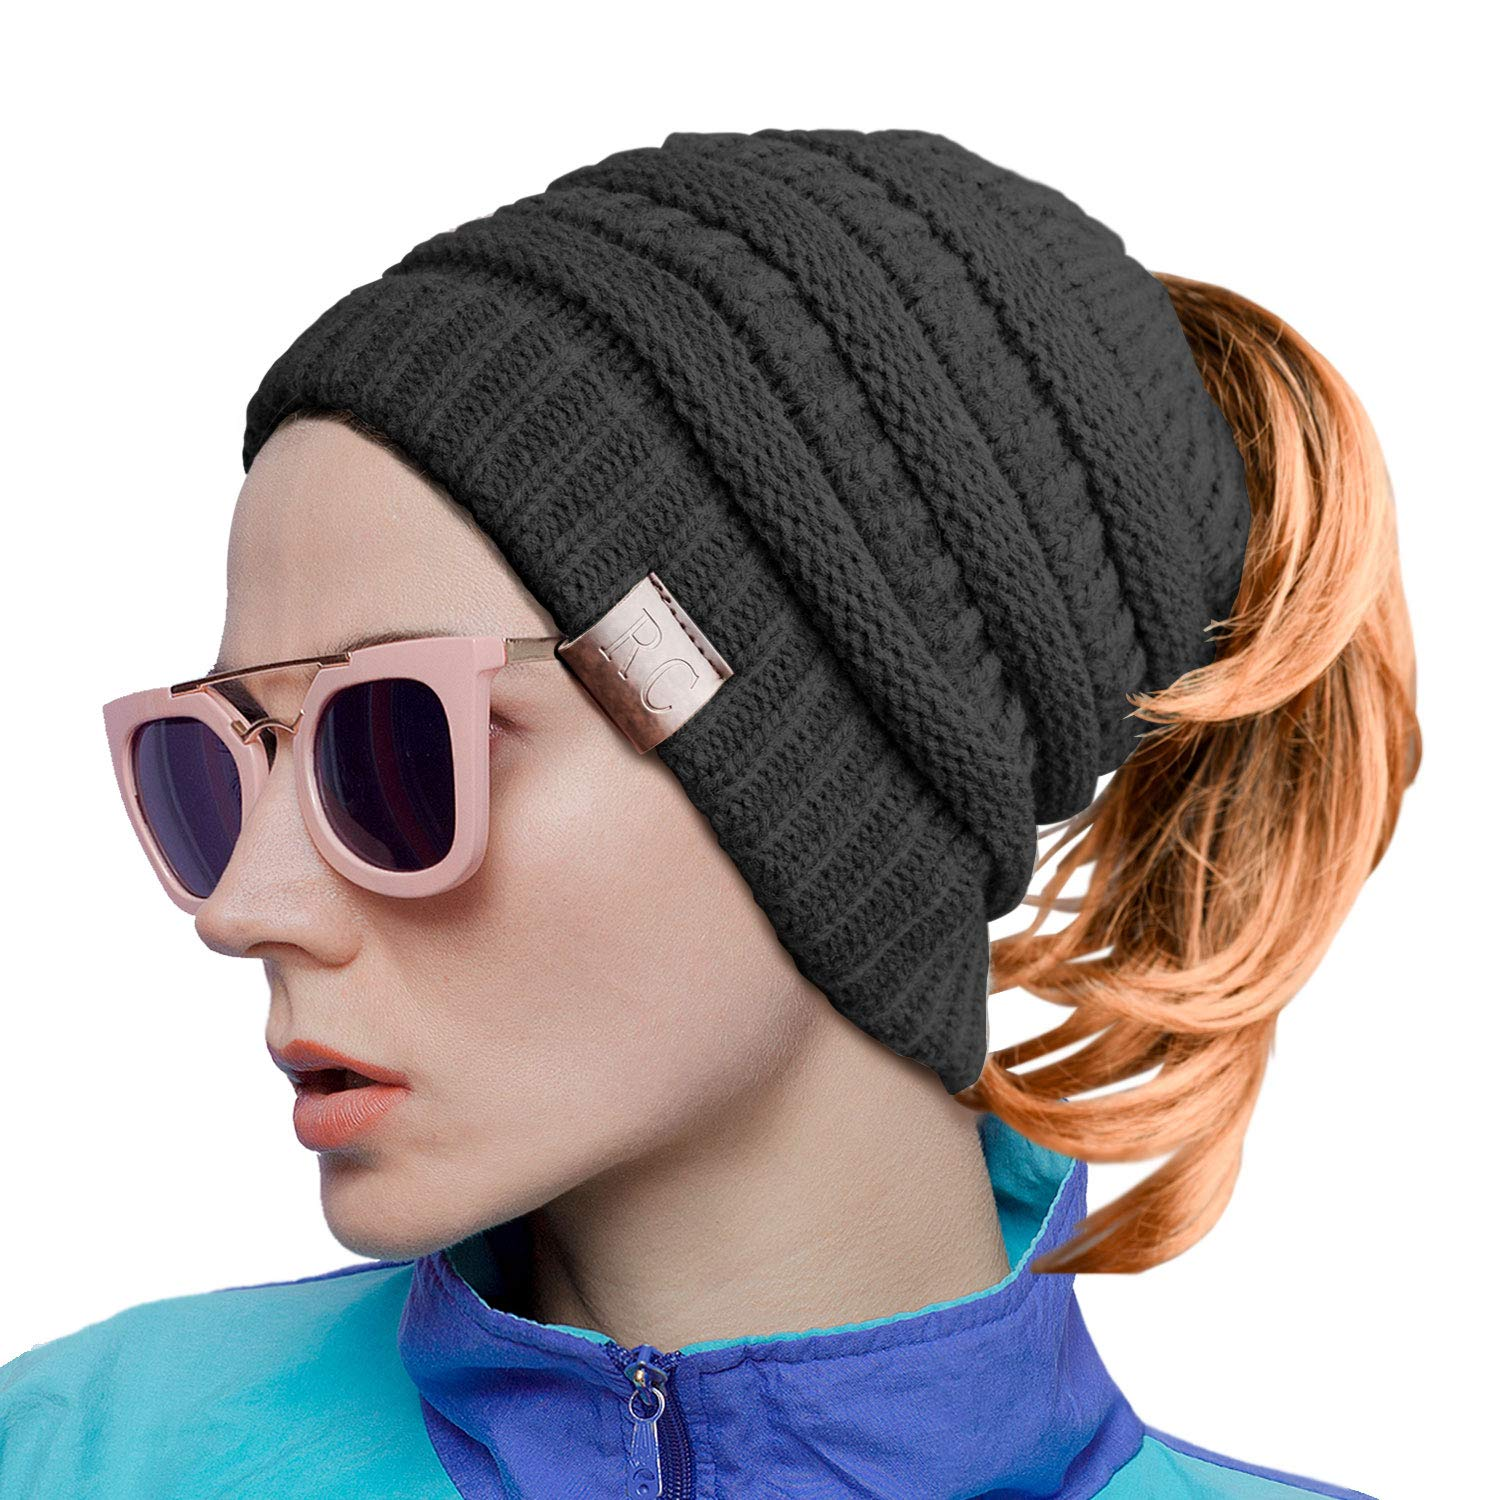 f12919da50be8 ... Fuzzy Lined Ear Warmer Headband · Next product ·   C.C BeanieTail Soft  Stretch Cable Knit Messy High Bun Ponytail Beanie Hat